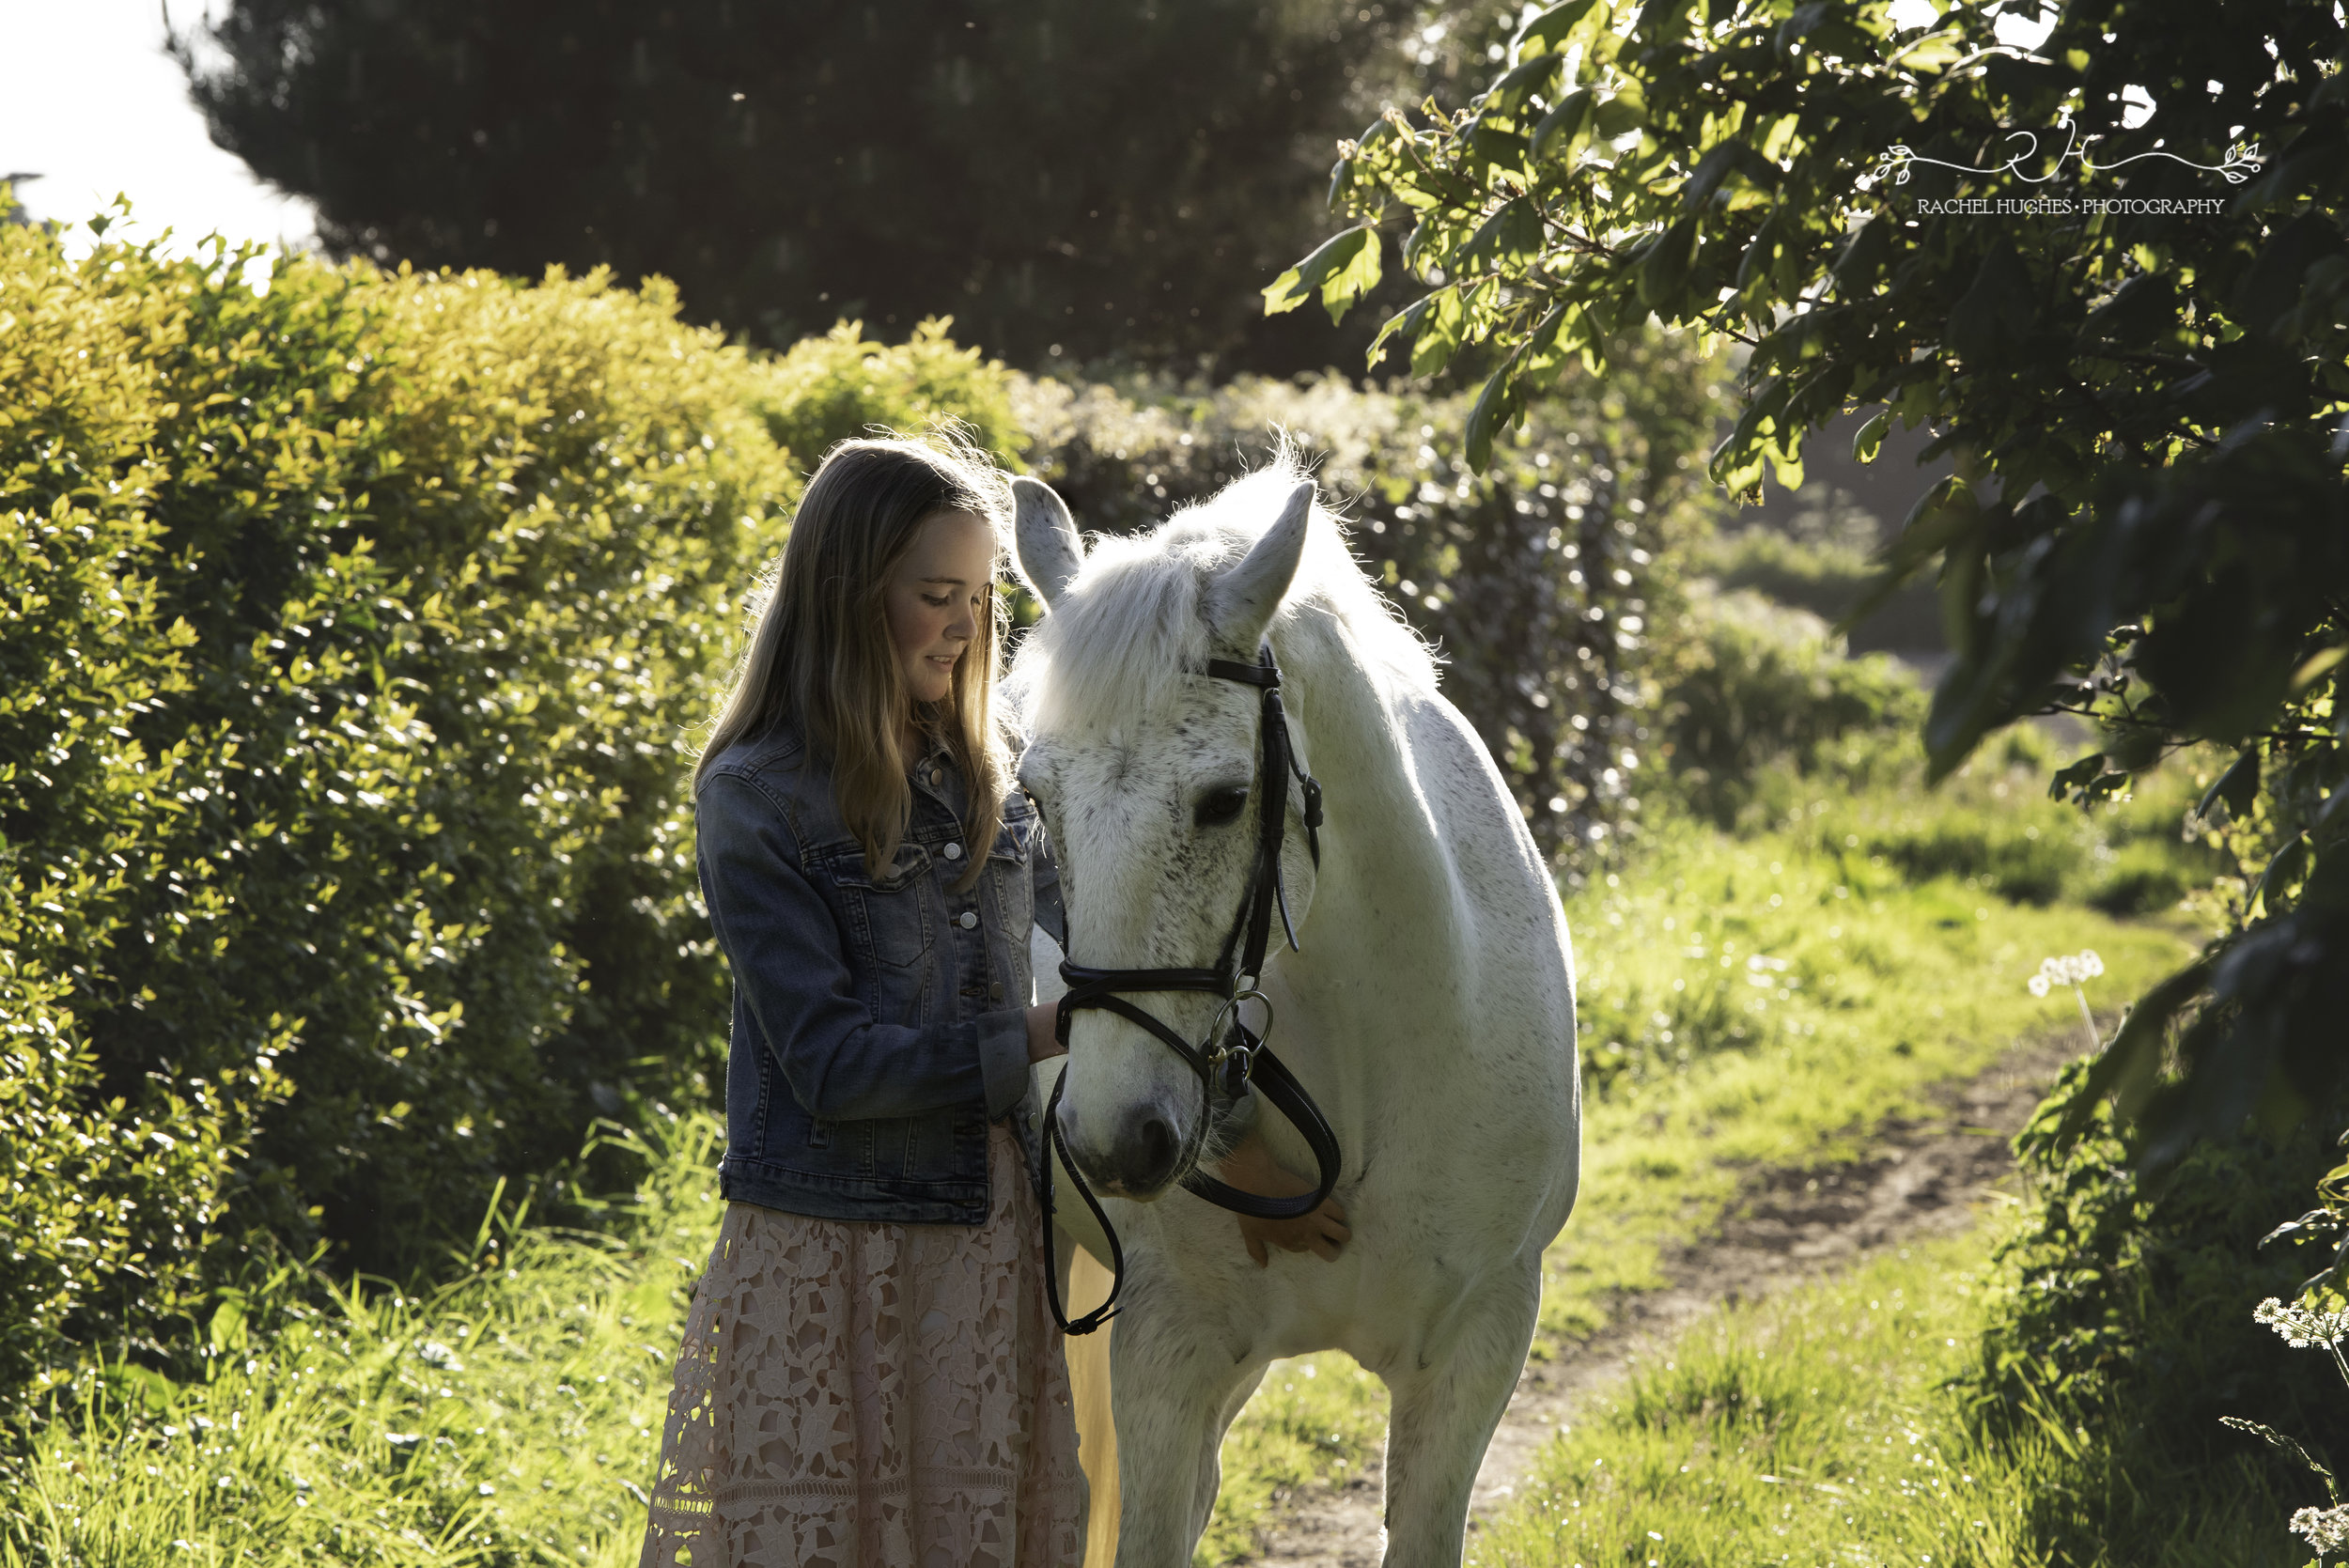 Jersey photographer - girl and horse in sunlit pathway